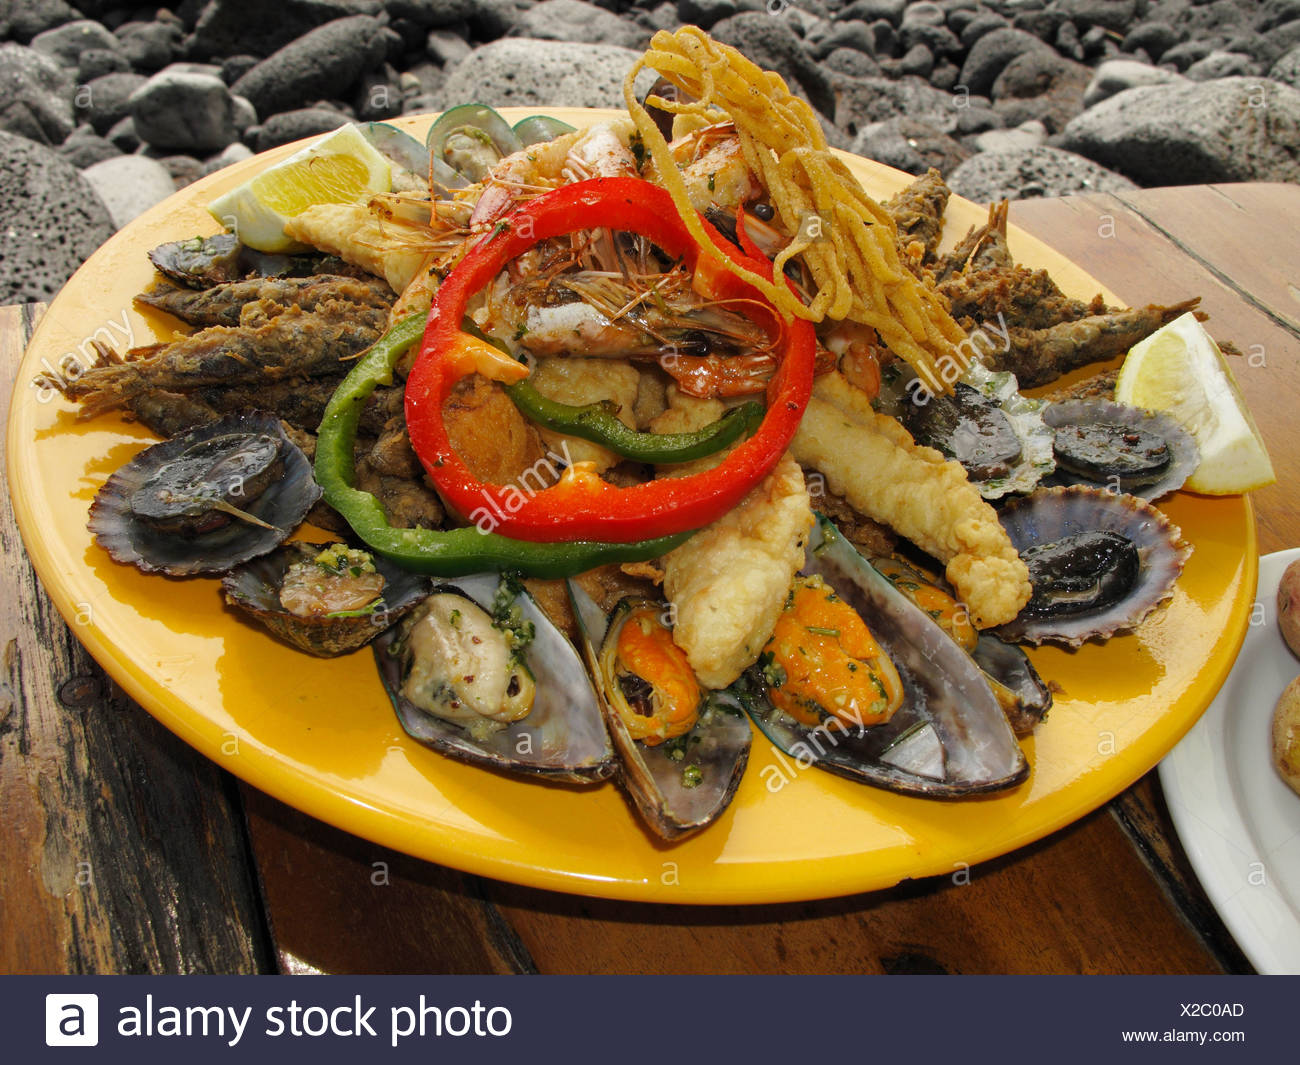 Seafood dish, La Palma, Canary Islands, Spain Stock Photo